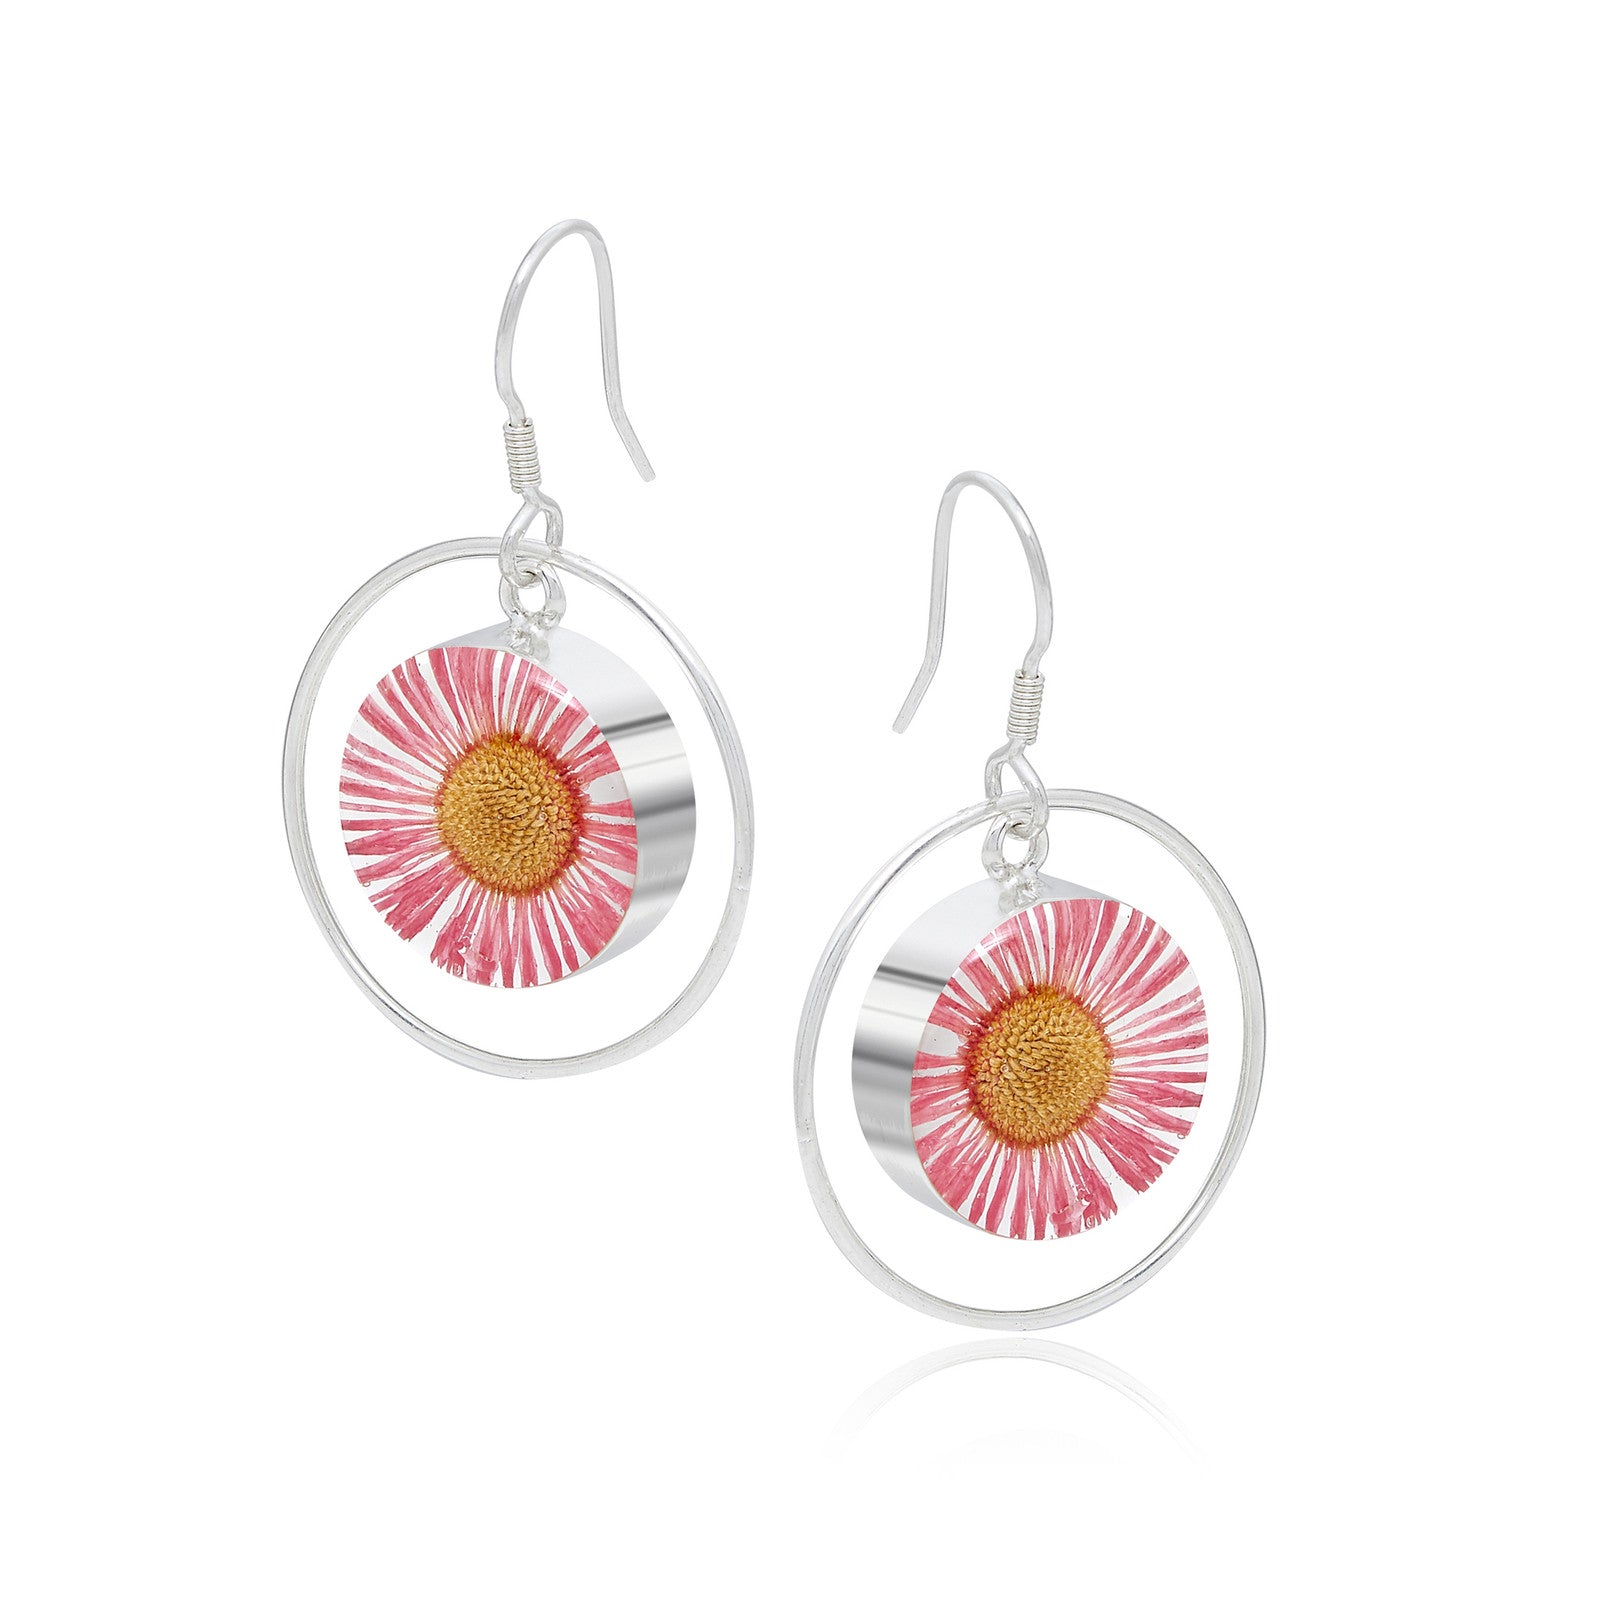 Silver Earrings - Daisy Pink - with Silver Round Surround